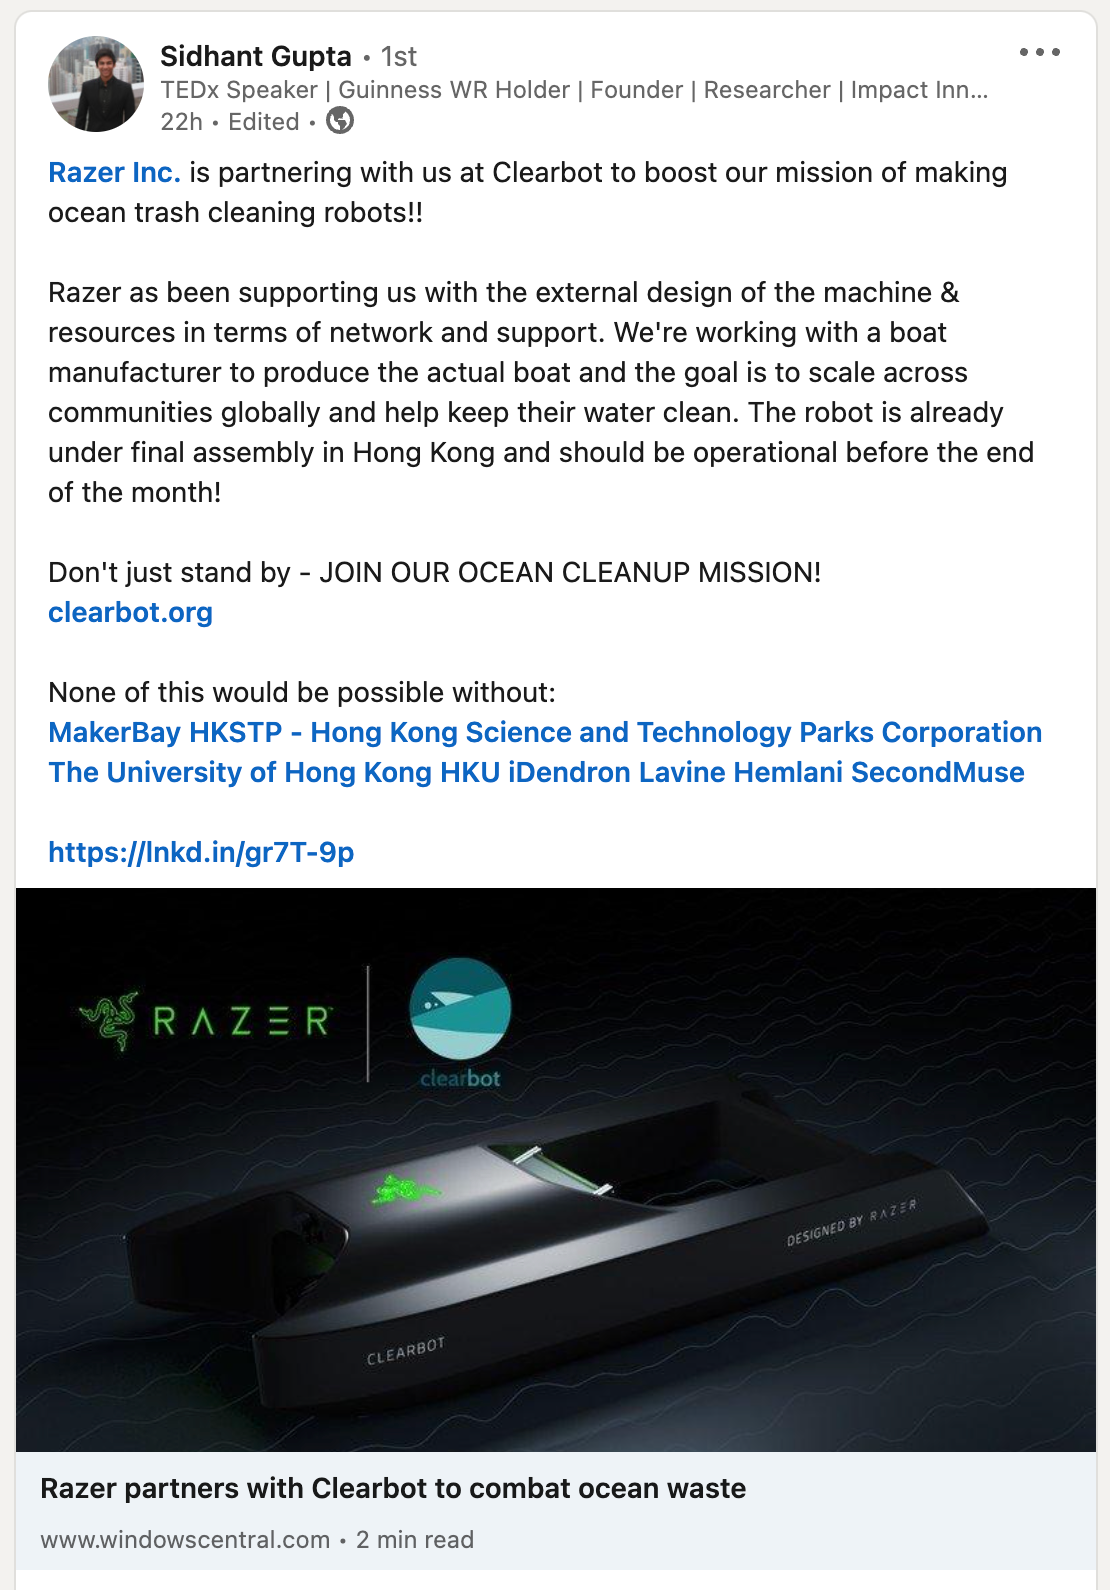 Clearbot Partners with Razer to build Ocean Cleaning Robots